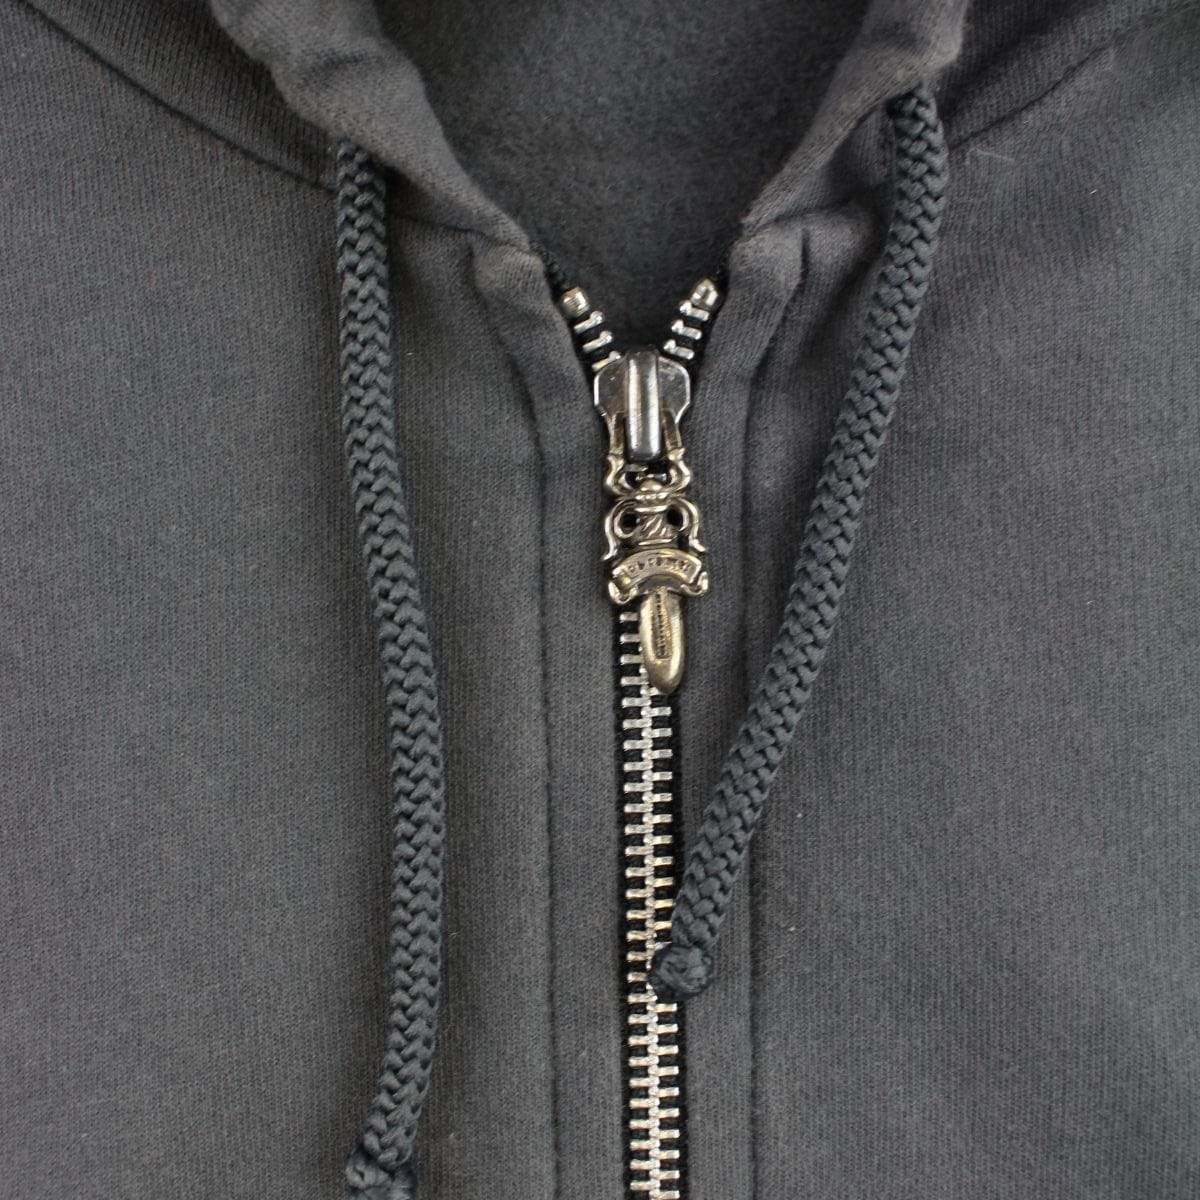 chrome hearts classic crosses hoodie grey - SaruGeneral